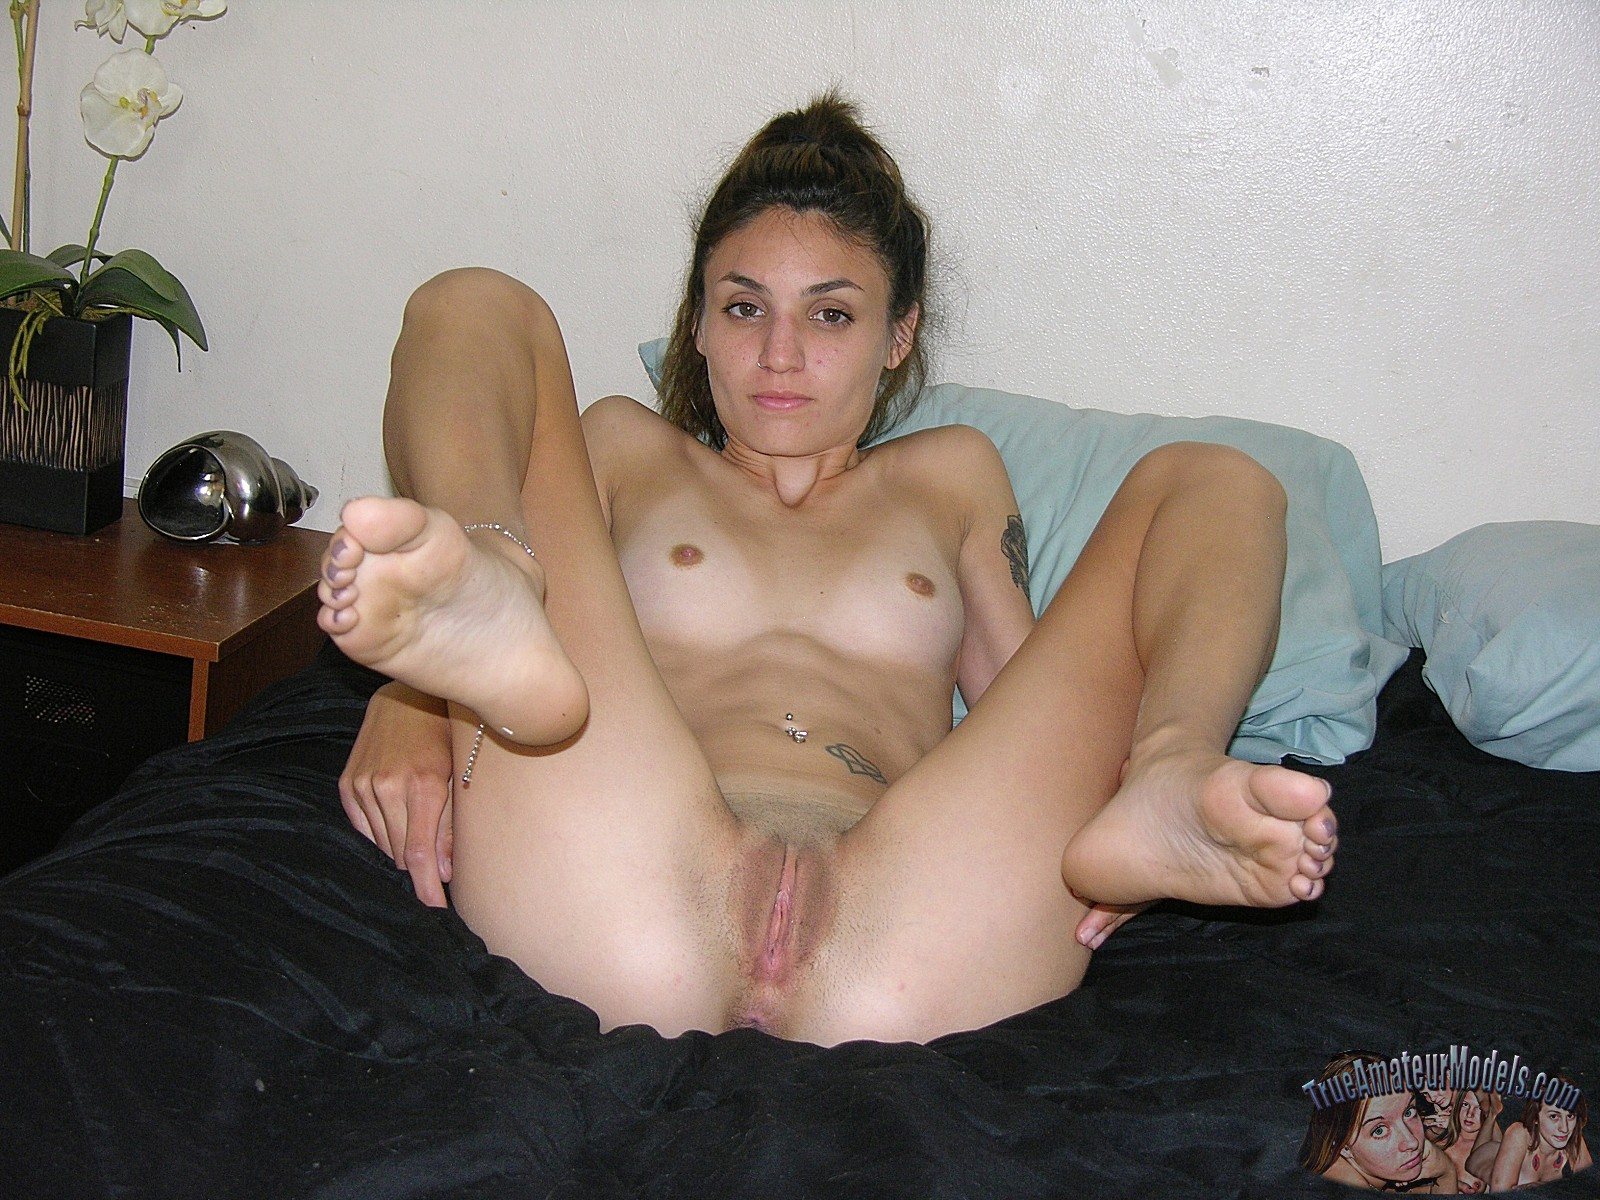 Submissive anal female